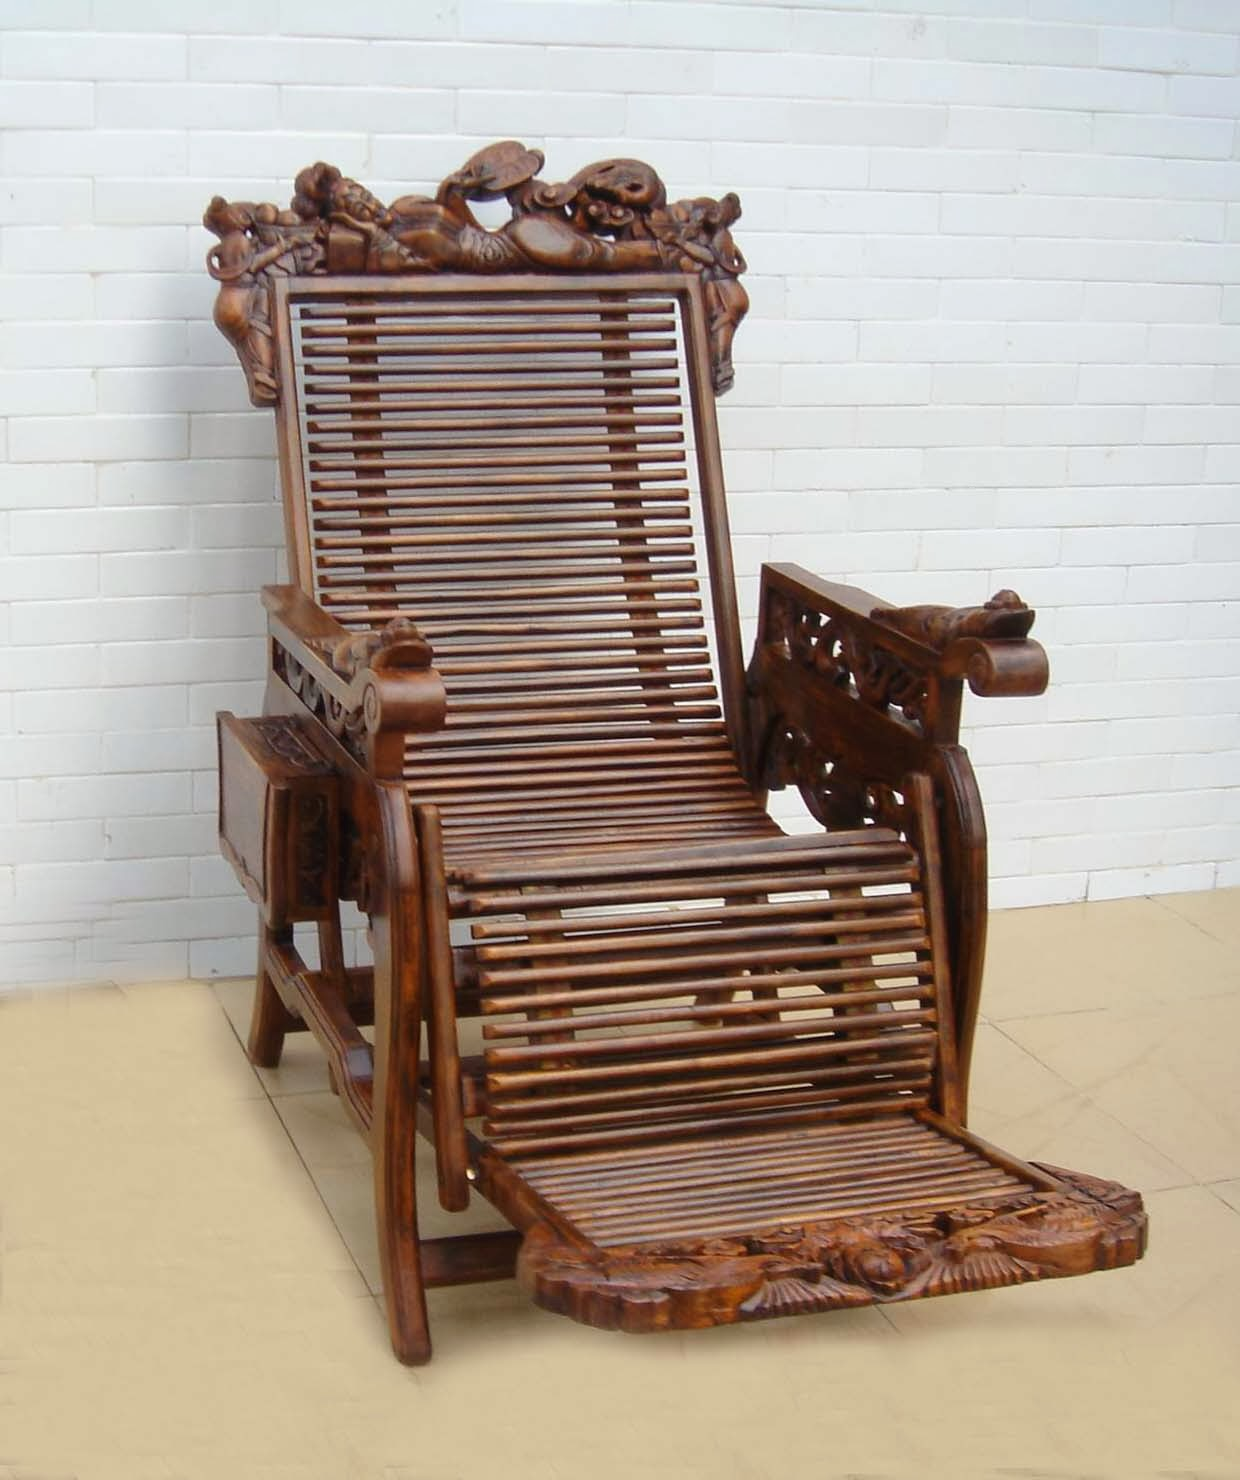 old wood chairs rocking chair pad set give your home a trendy 2014 makeover sweet